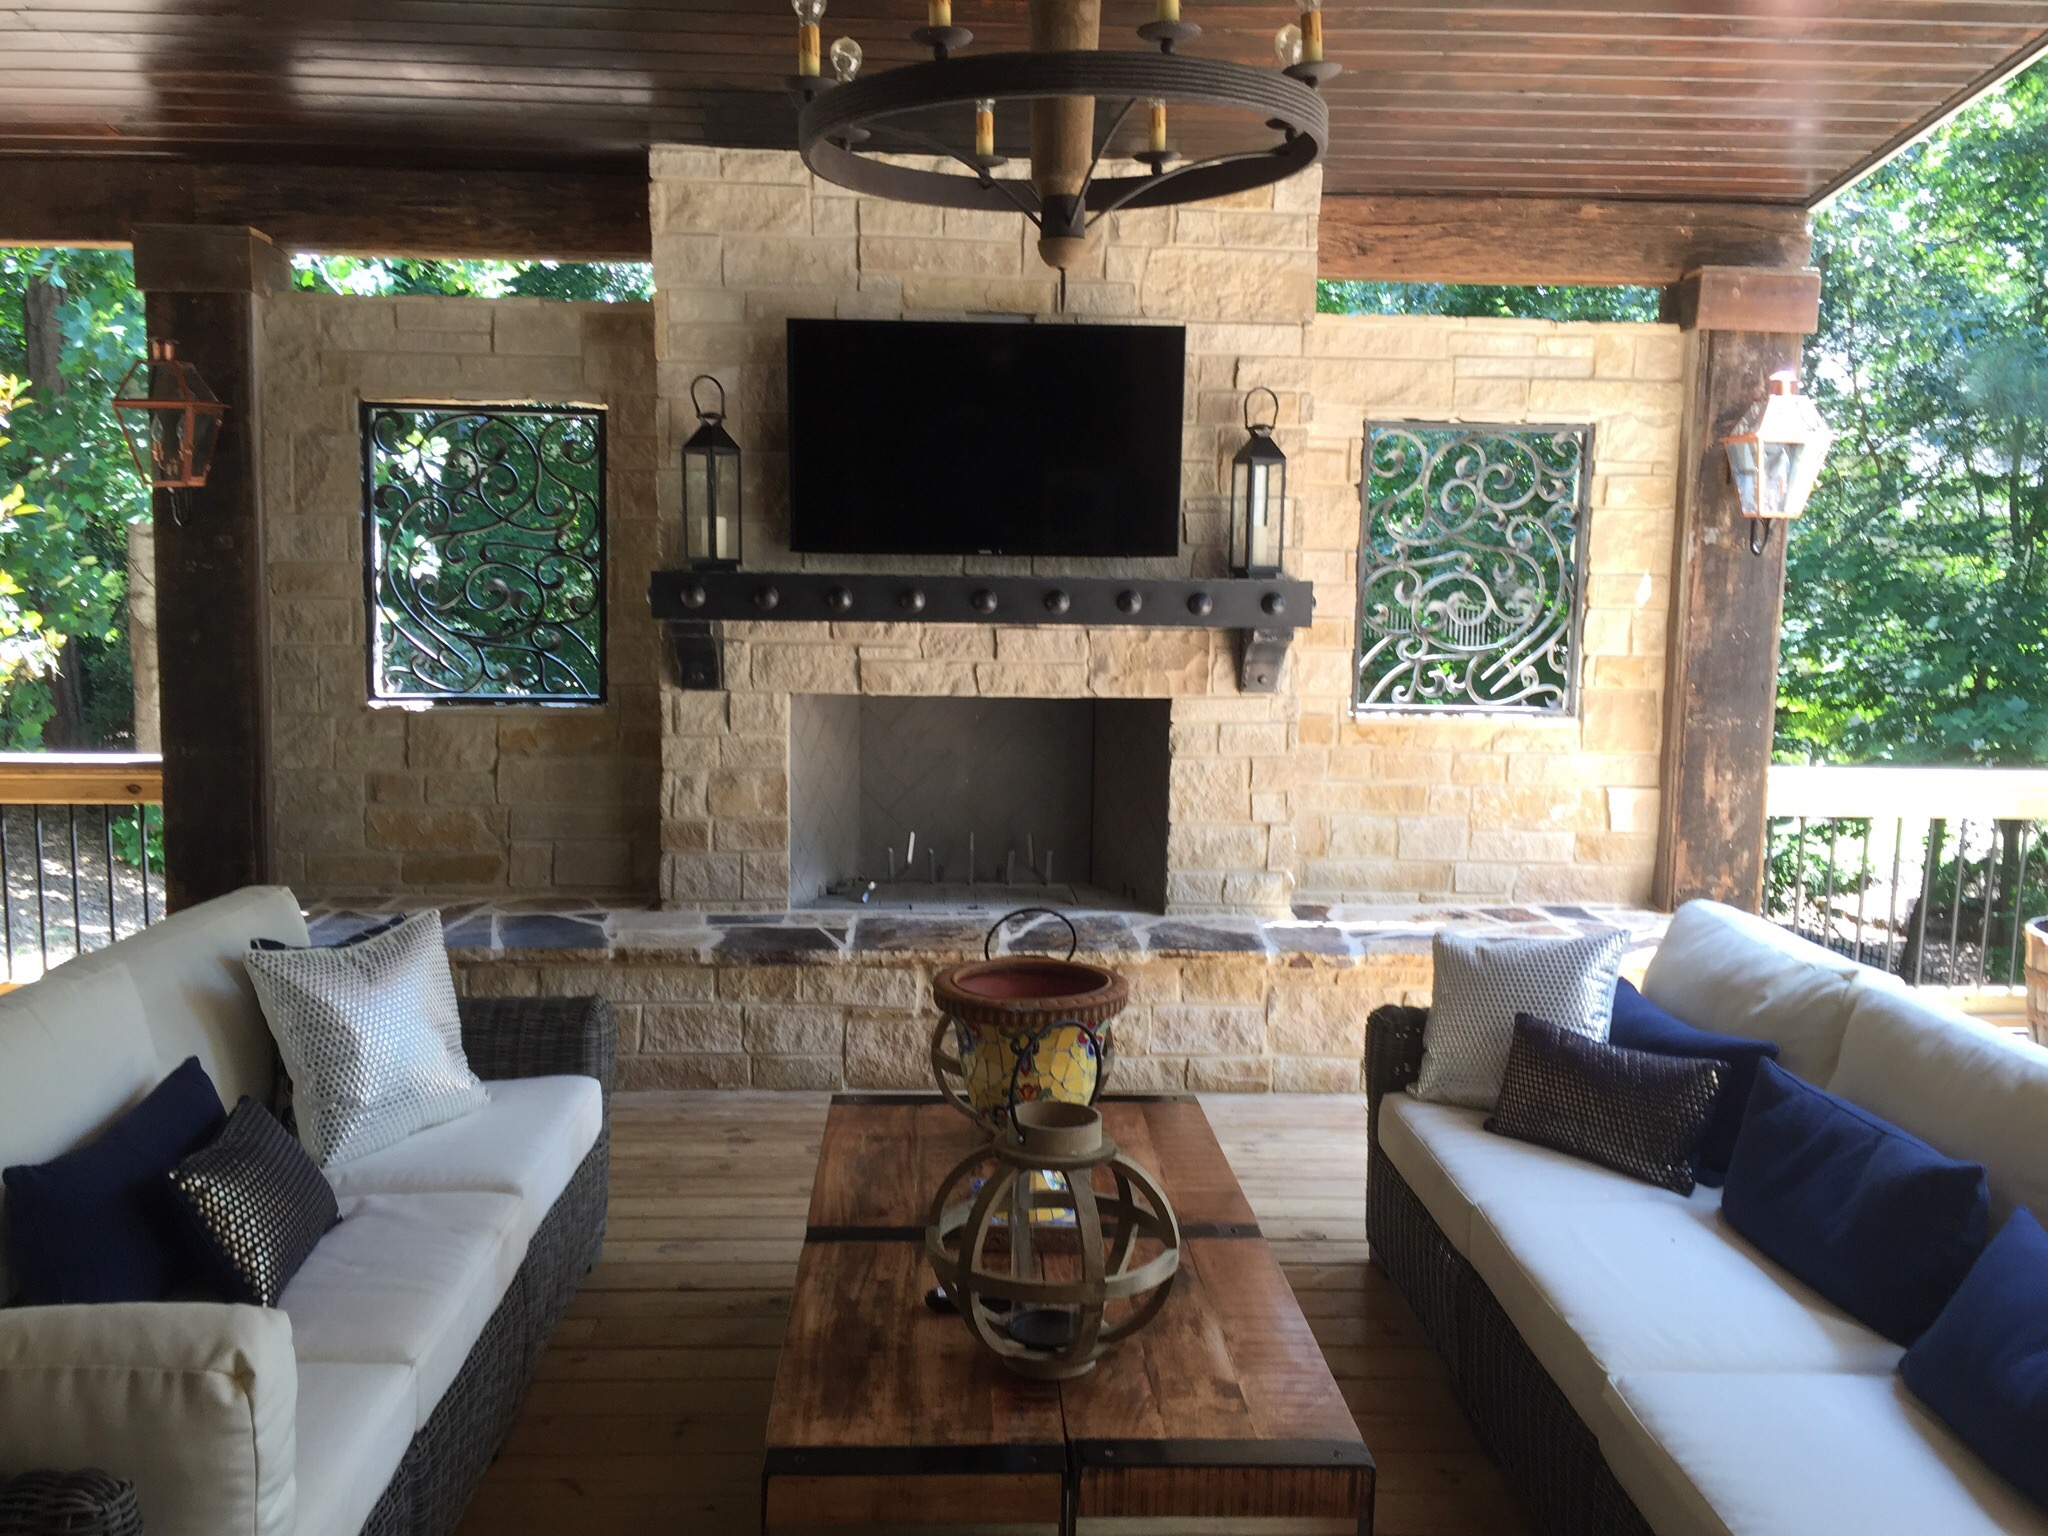 Old Hat Chimney Service can make your outdoor living space dreams come true! We install quality products & our certified technicians provide reliable service.